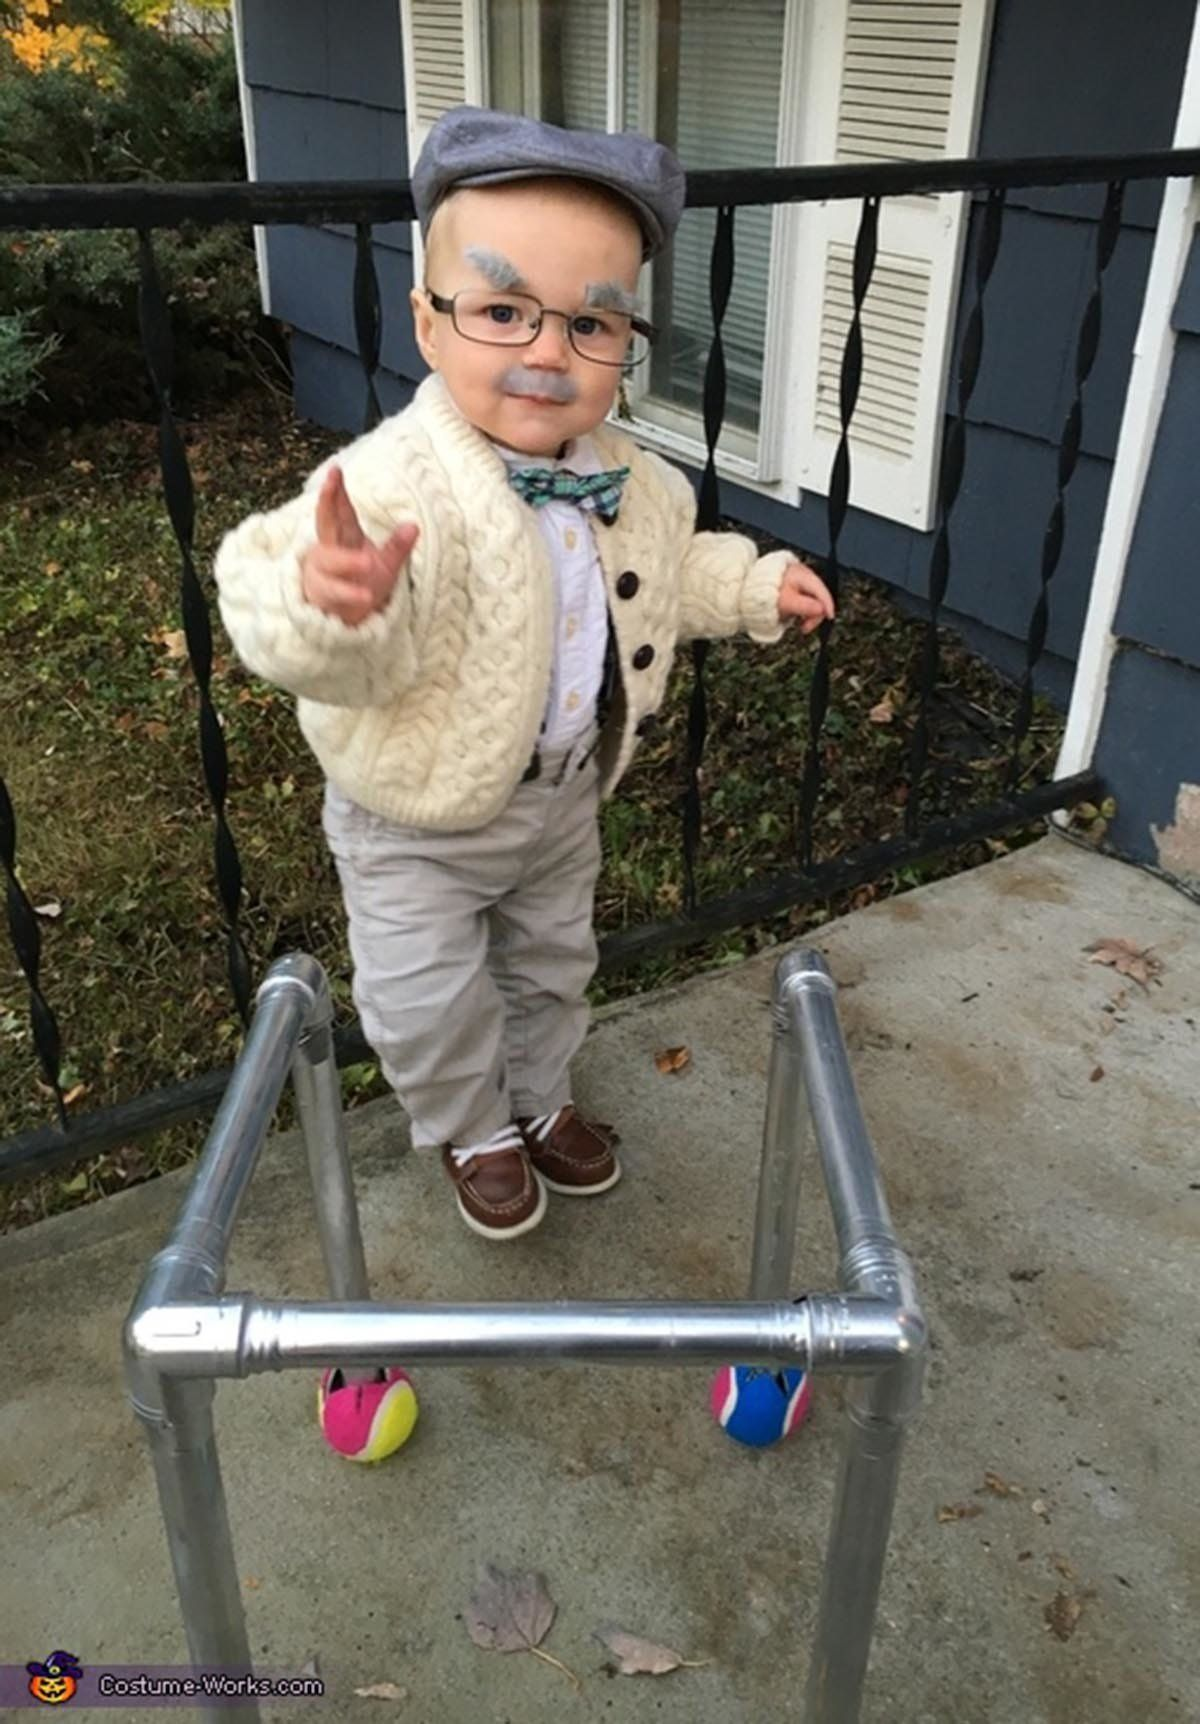 Baby Einstein 3 Meses Just 20 Photos Of Kids Dressed As Old People 'cause It's